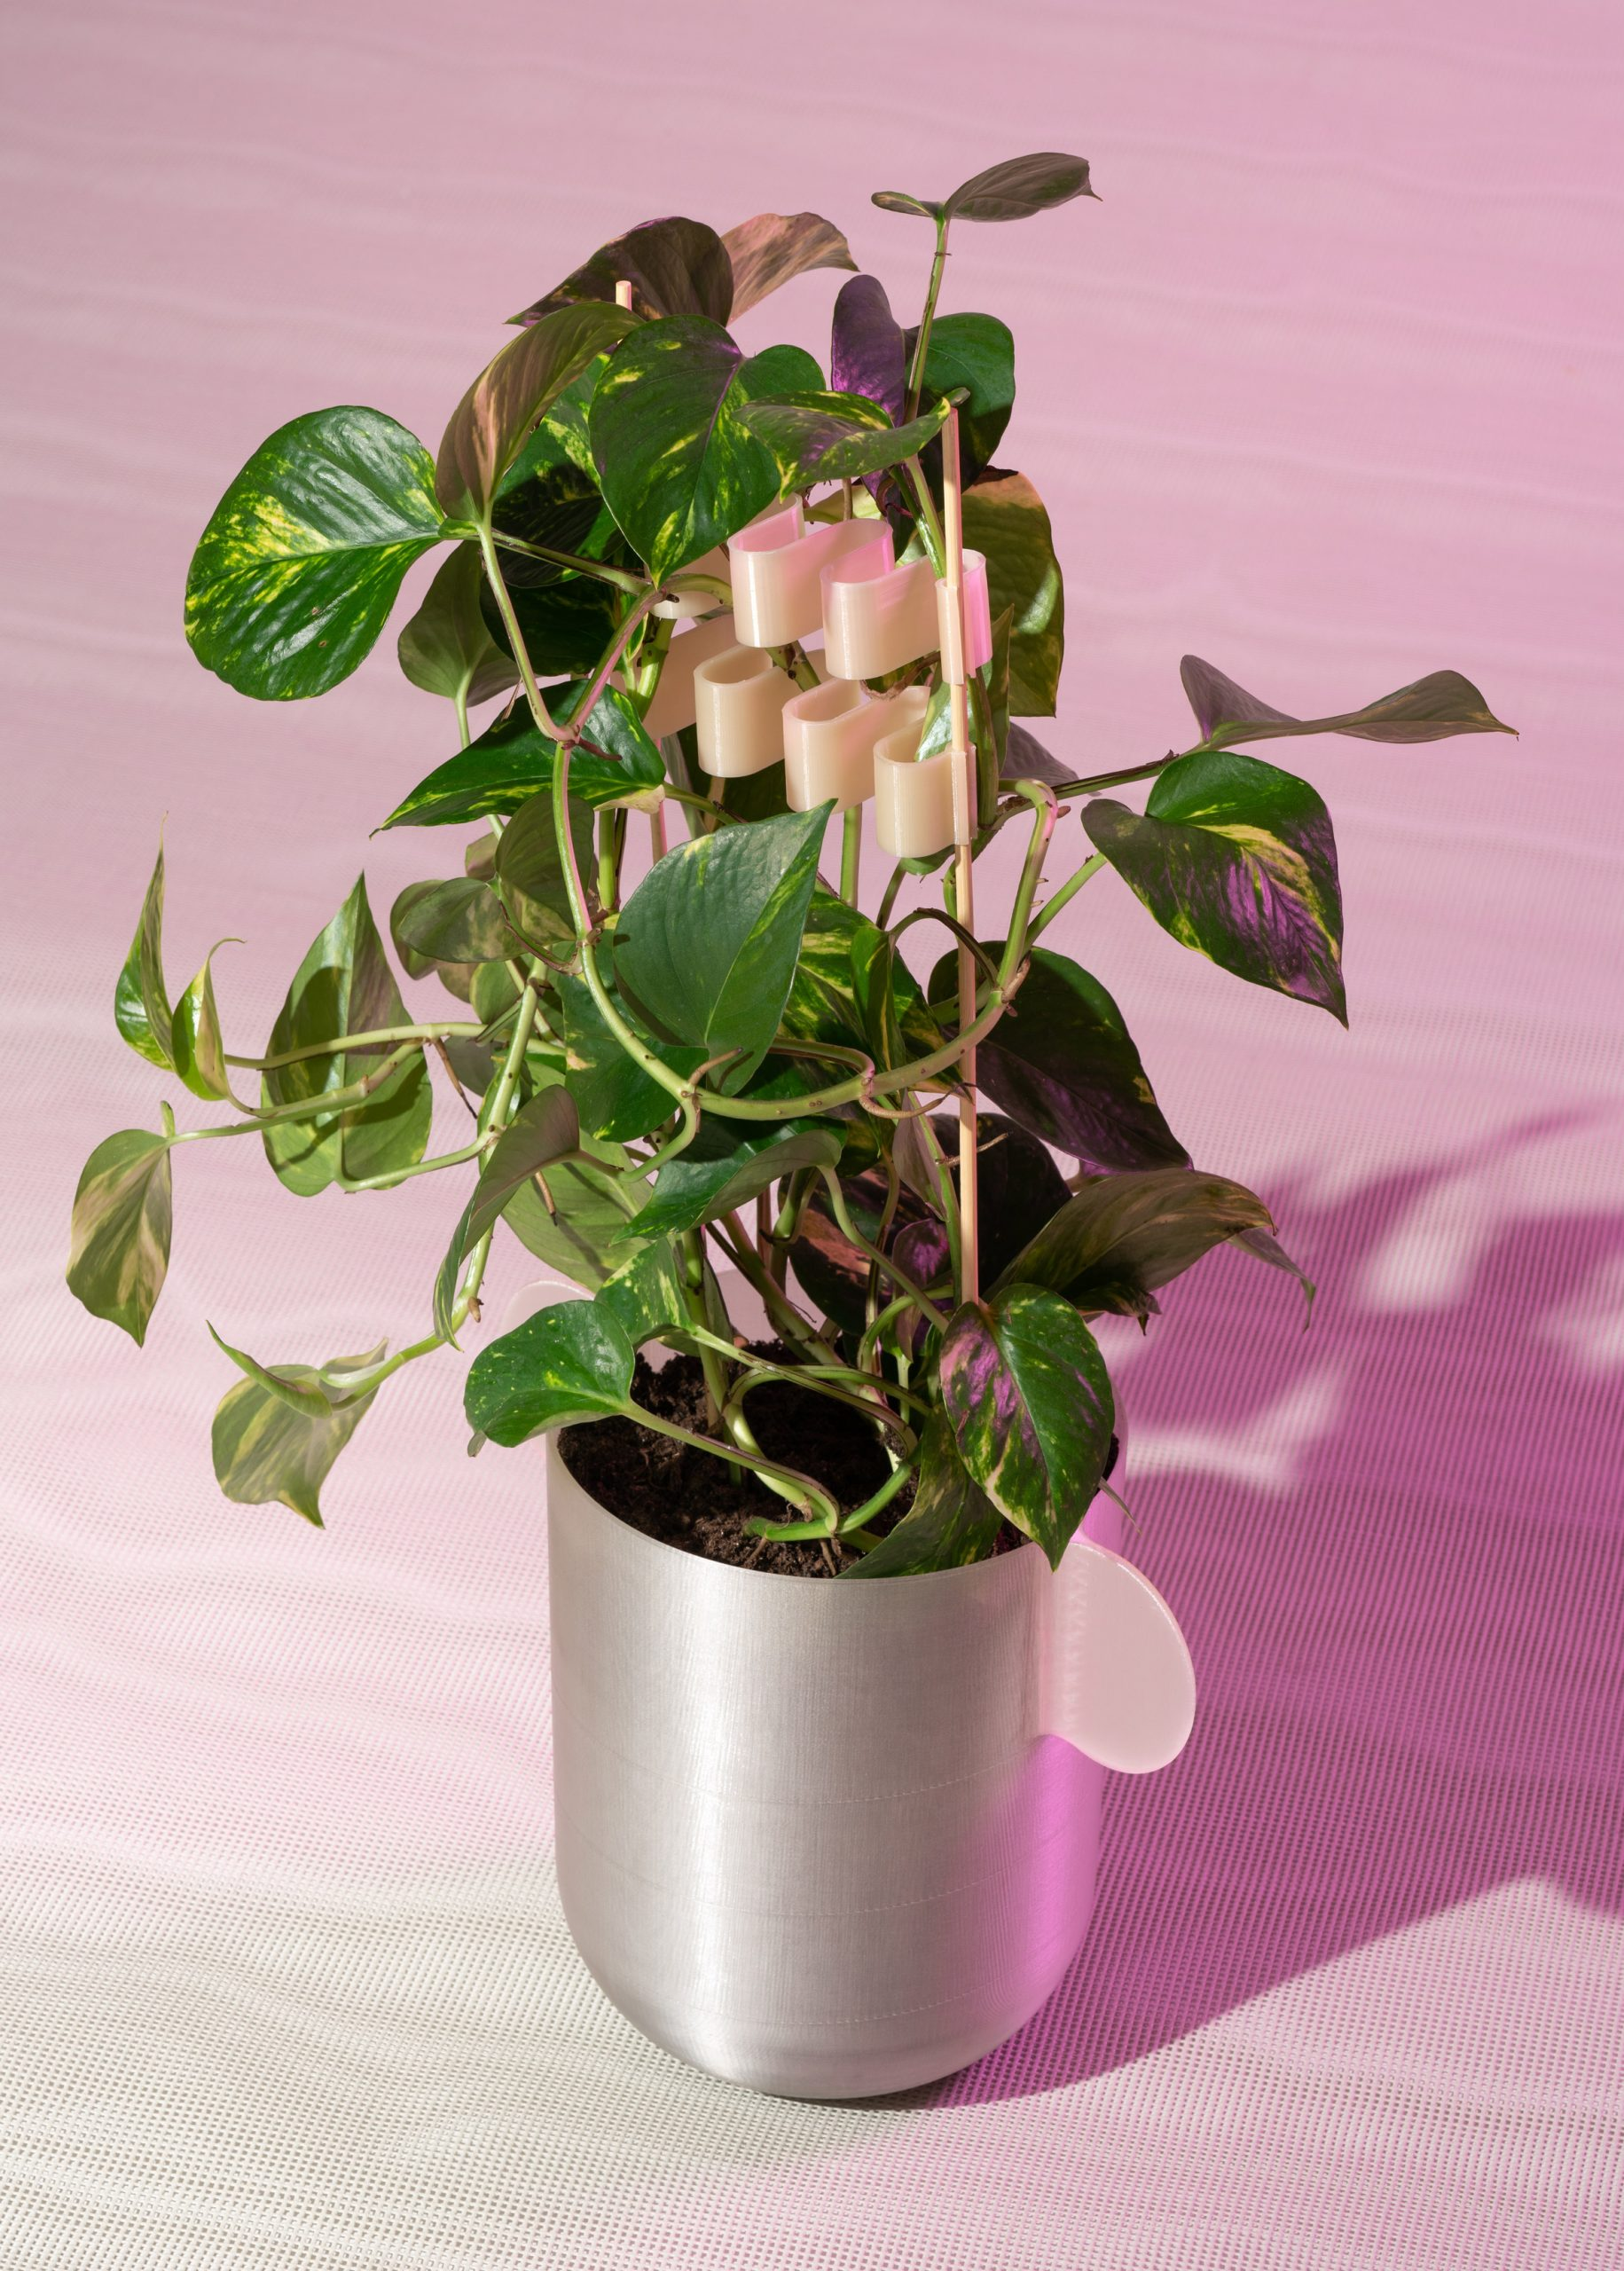 Flowerpot by Henriksson & Lindgren from Metabolic Processes for Leftovers exhibition